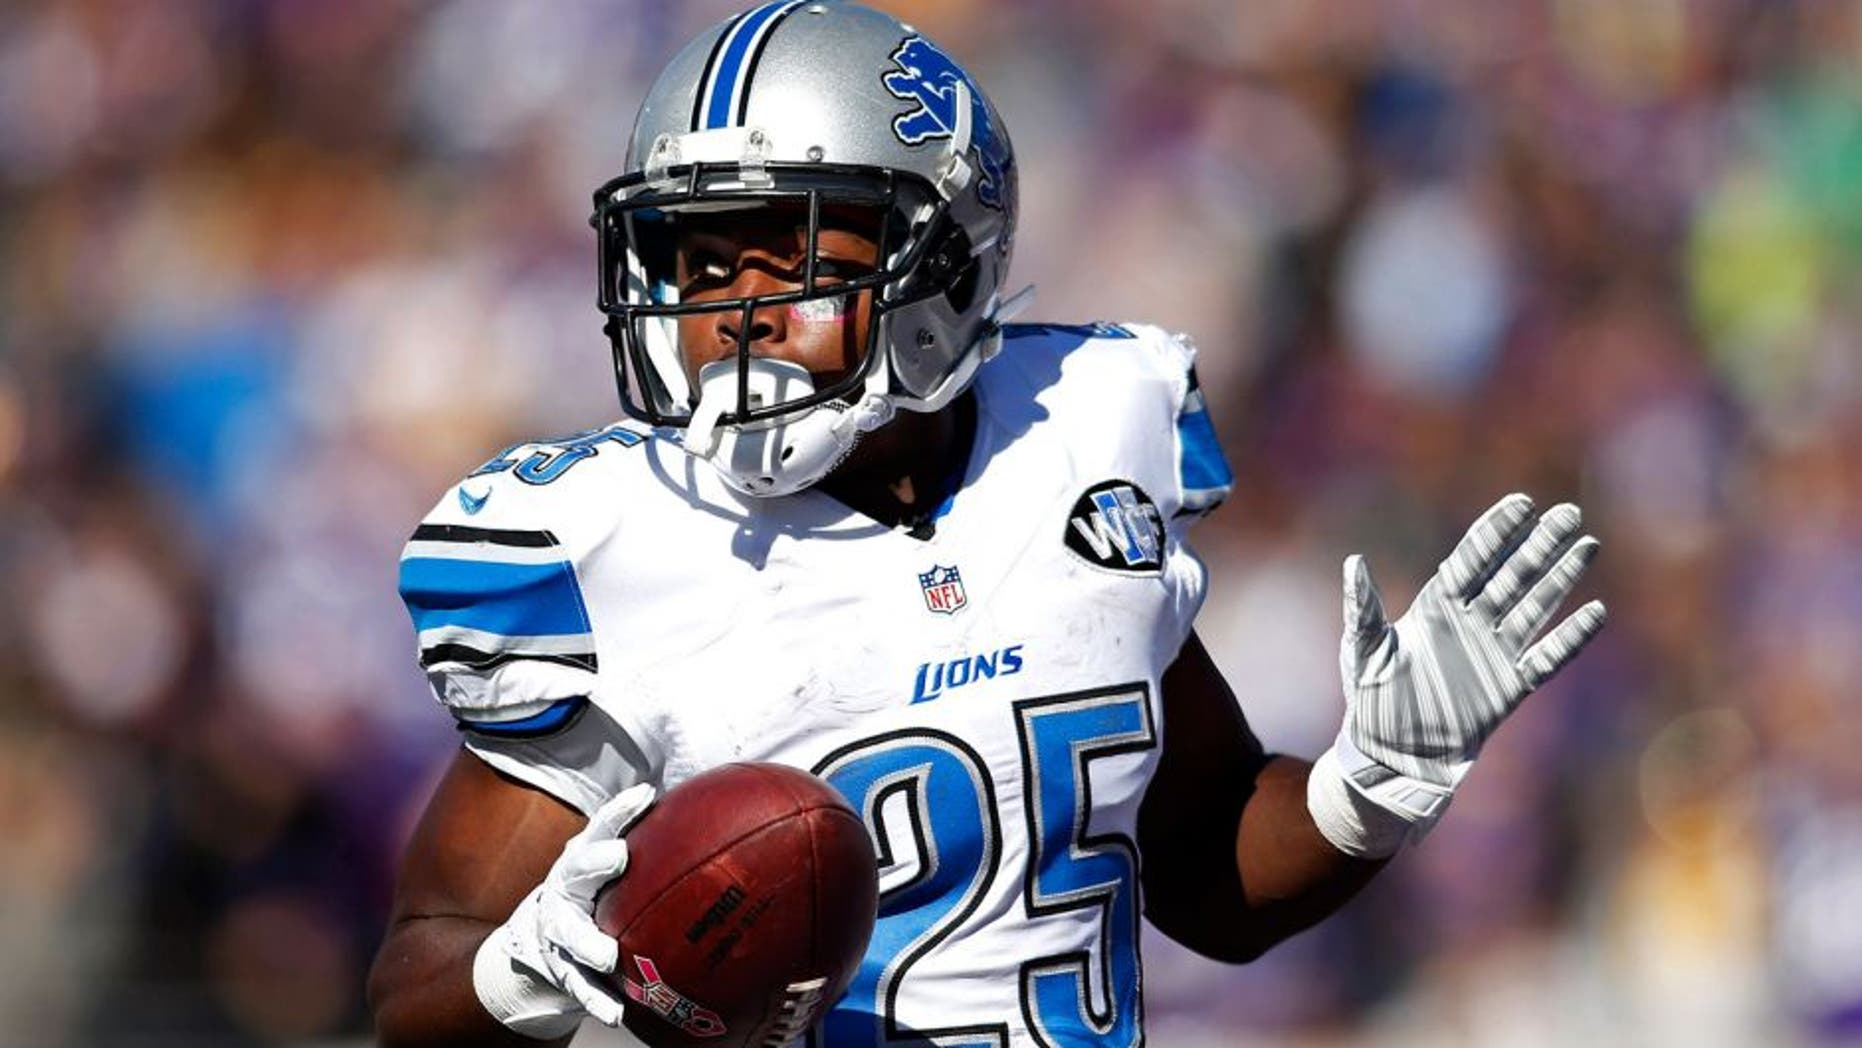 Oct 12, 2014; Minneapolis, MN, USA; Detroit Lions running back Theo Riddick (25) celebrates his touchdown against the Minnesota Vikings in the first quarter at TCF Bank Stadium. Mandatory Credit: Bruce Kluckhohn-USA TODAY Sports